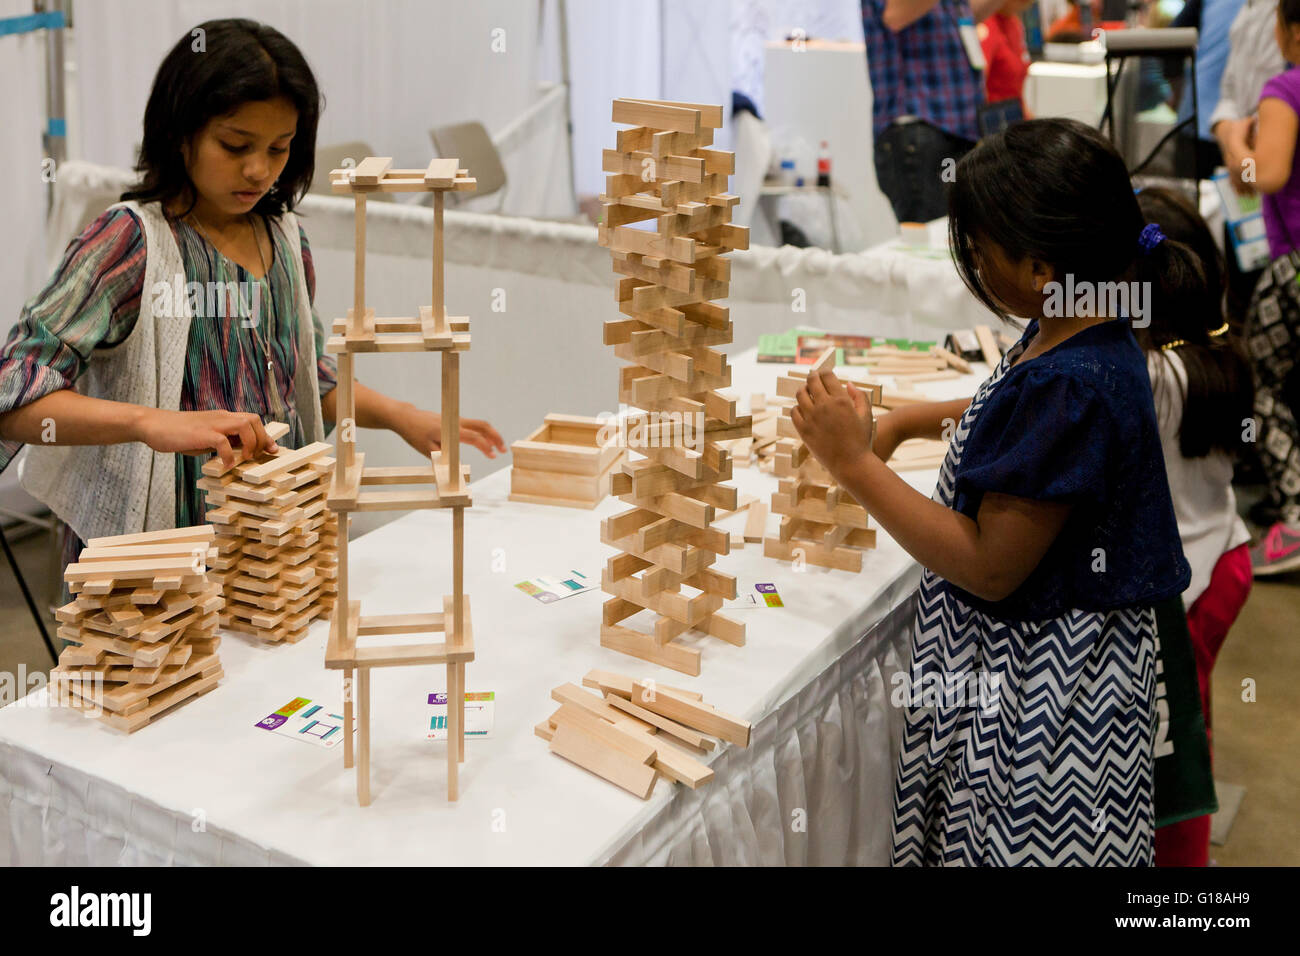 Girls stacking wooden toy blocks at science fair - USA Stock Photo